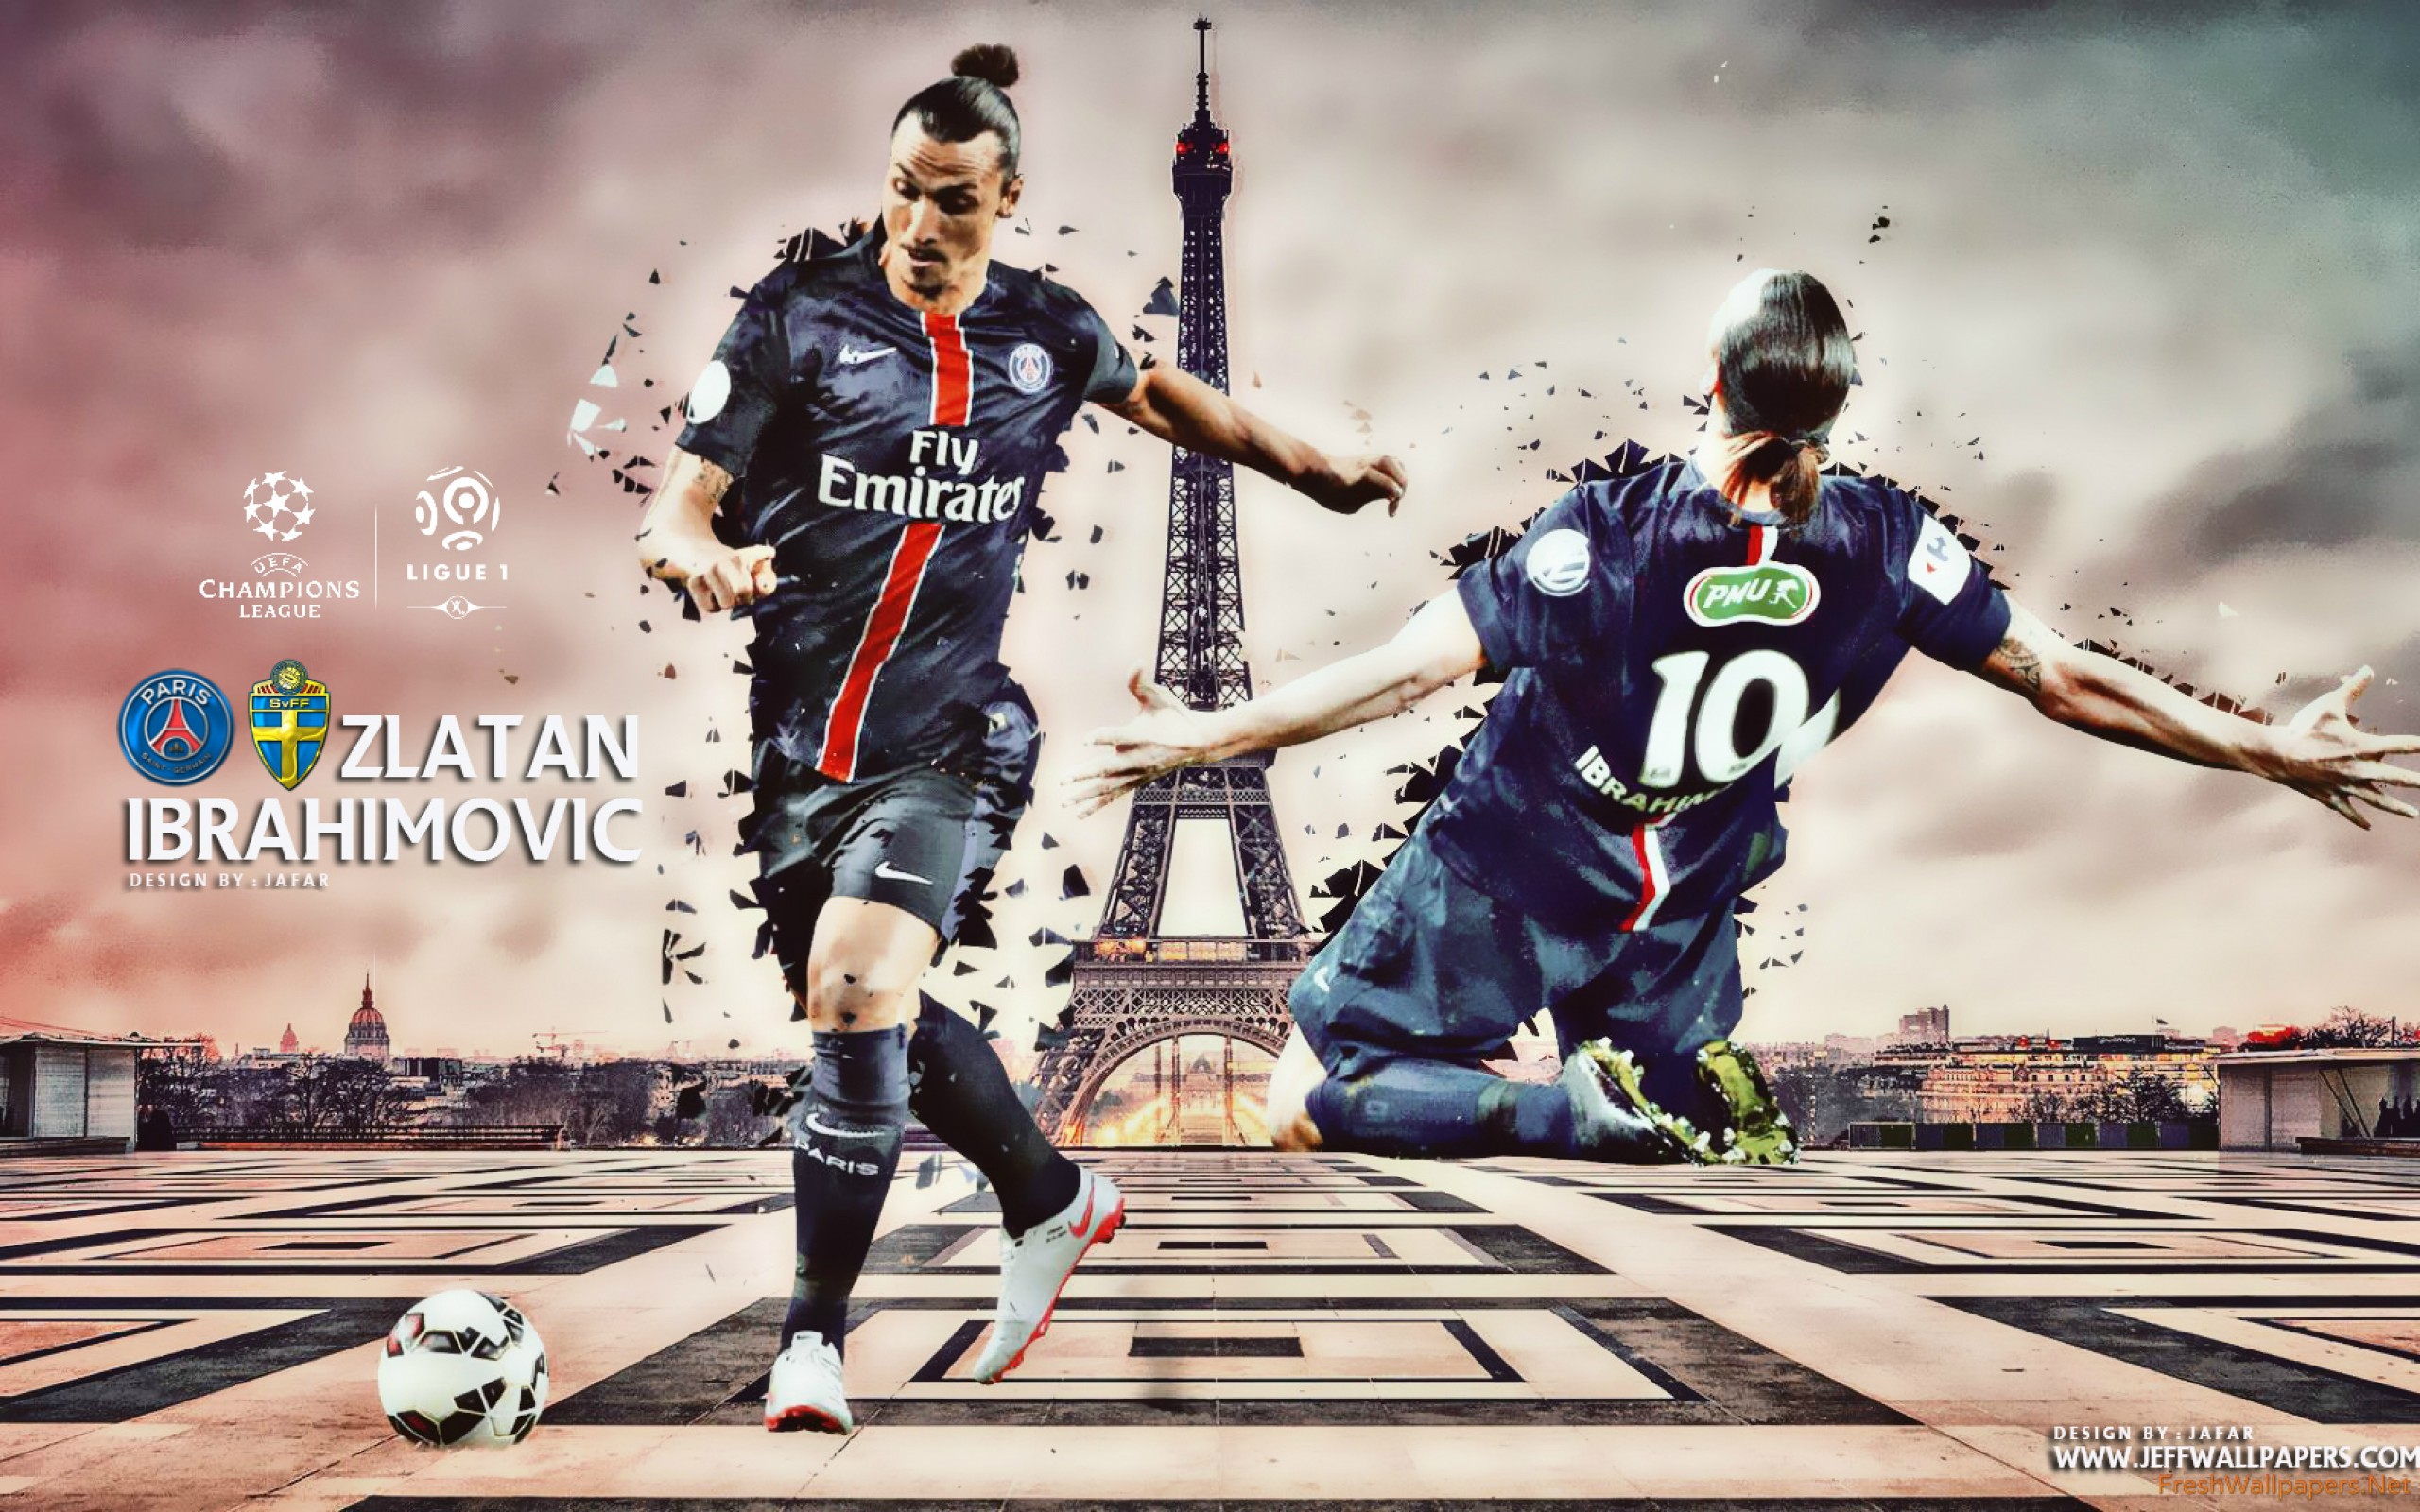 Zlatan Ibrahimovic Wallpapers, Pictures, Images